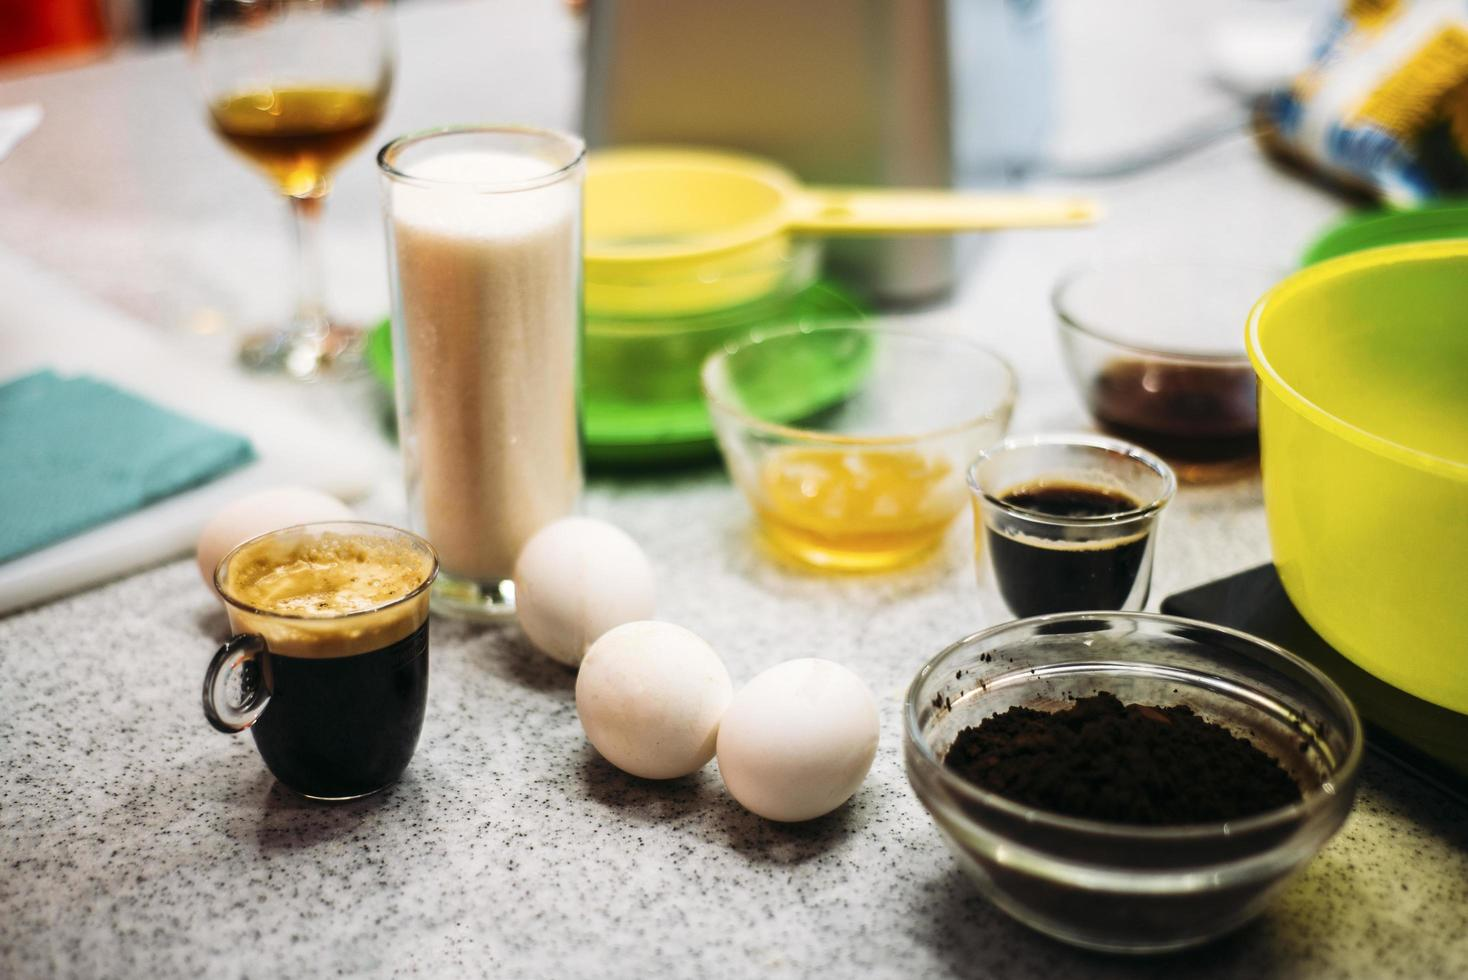 Eggs and coffee photo